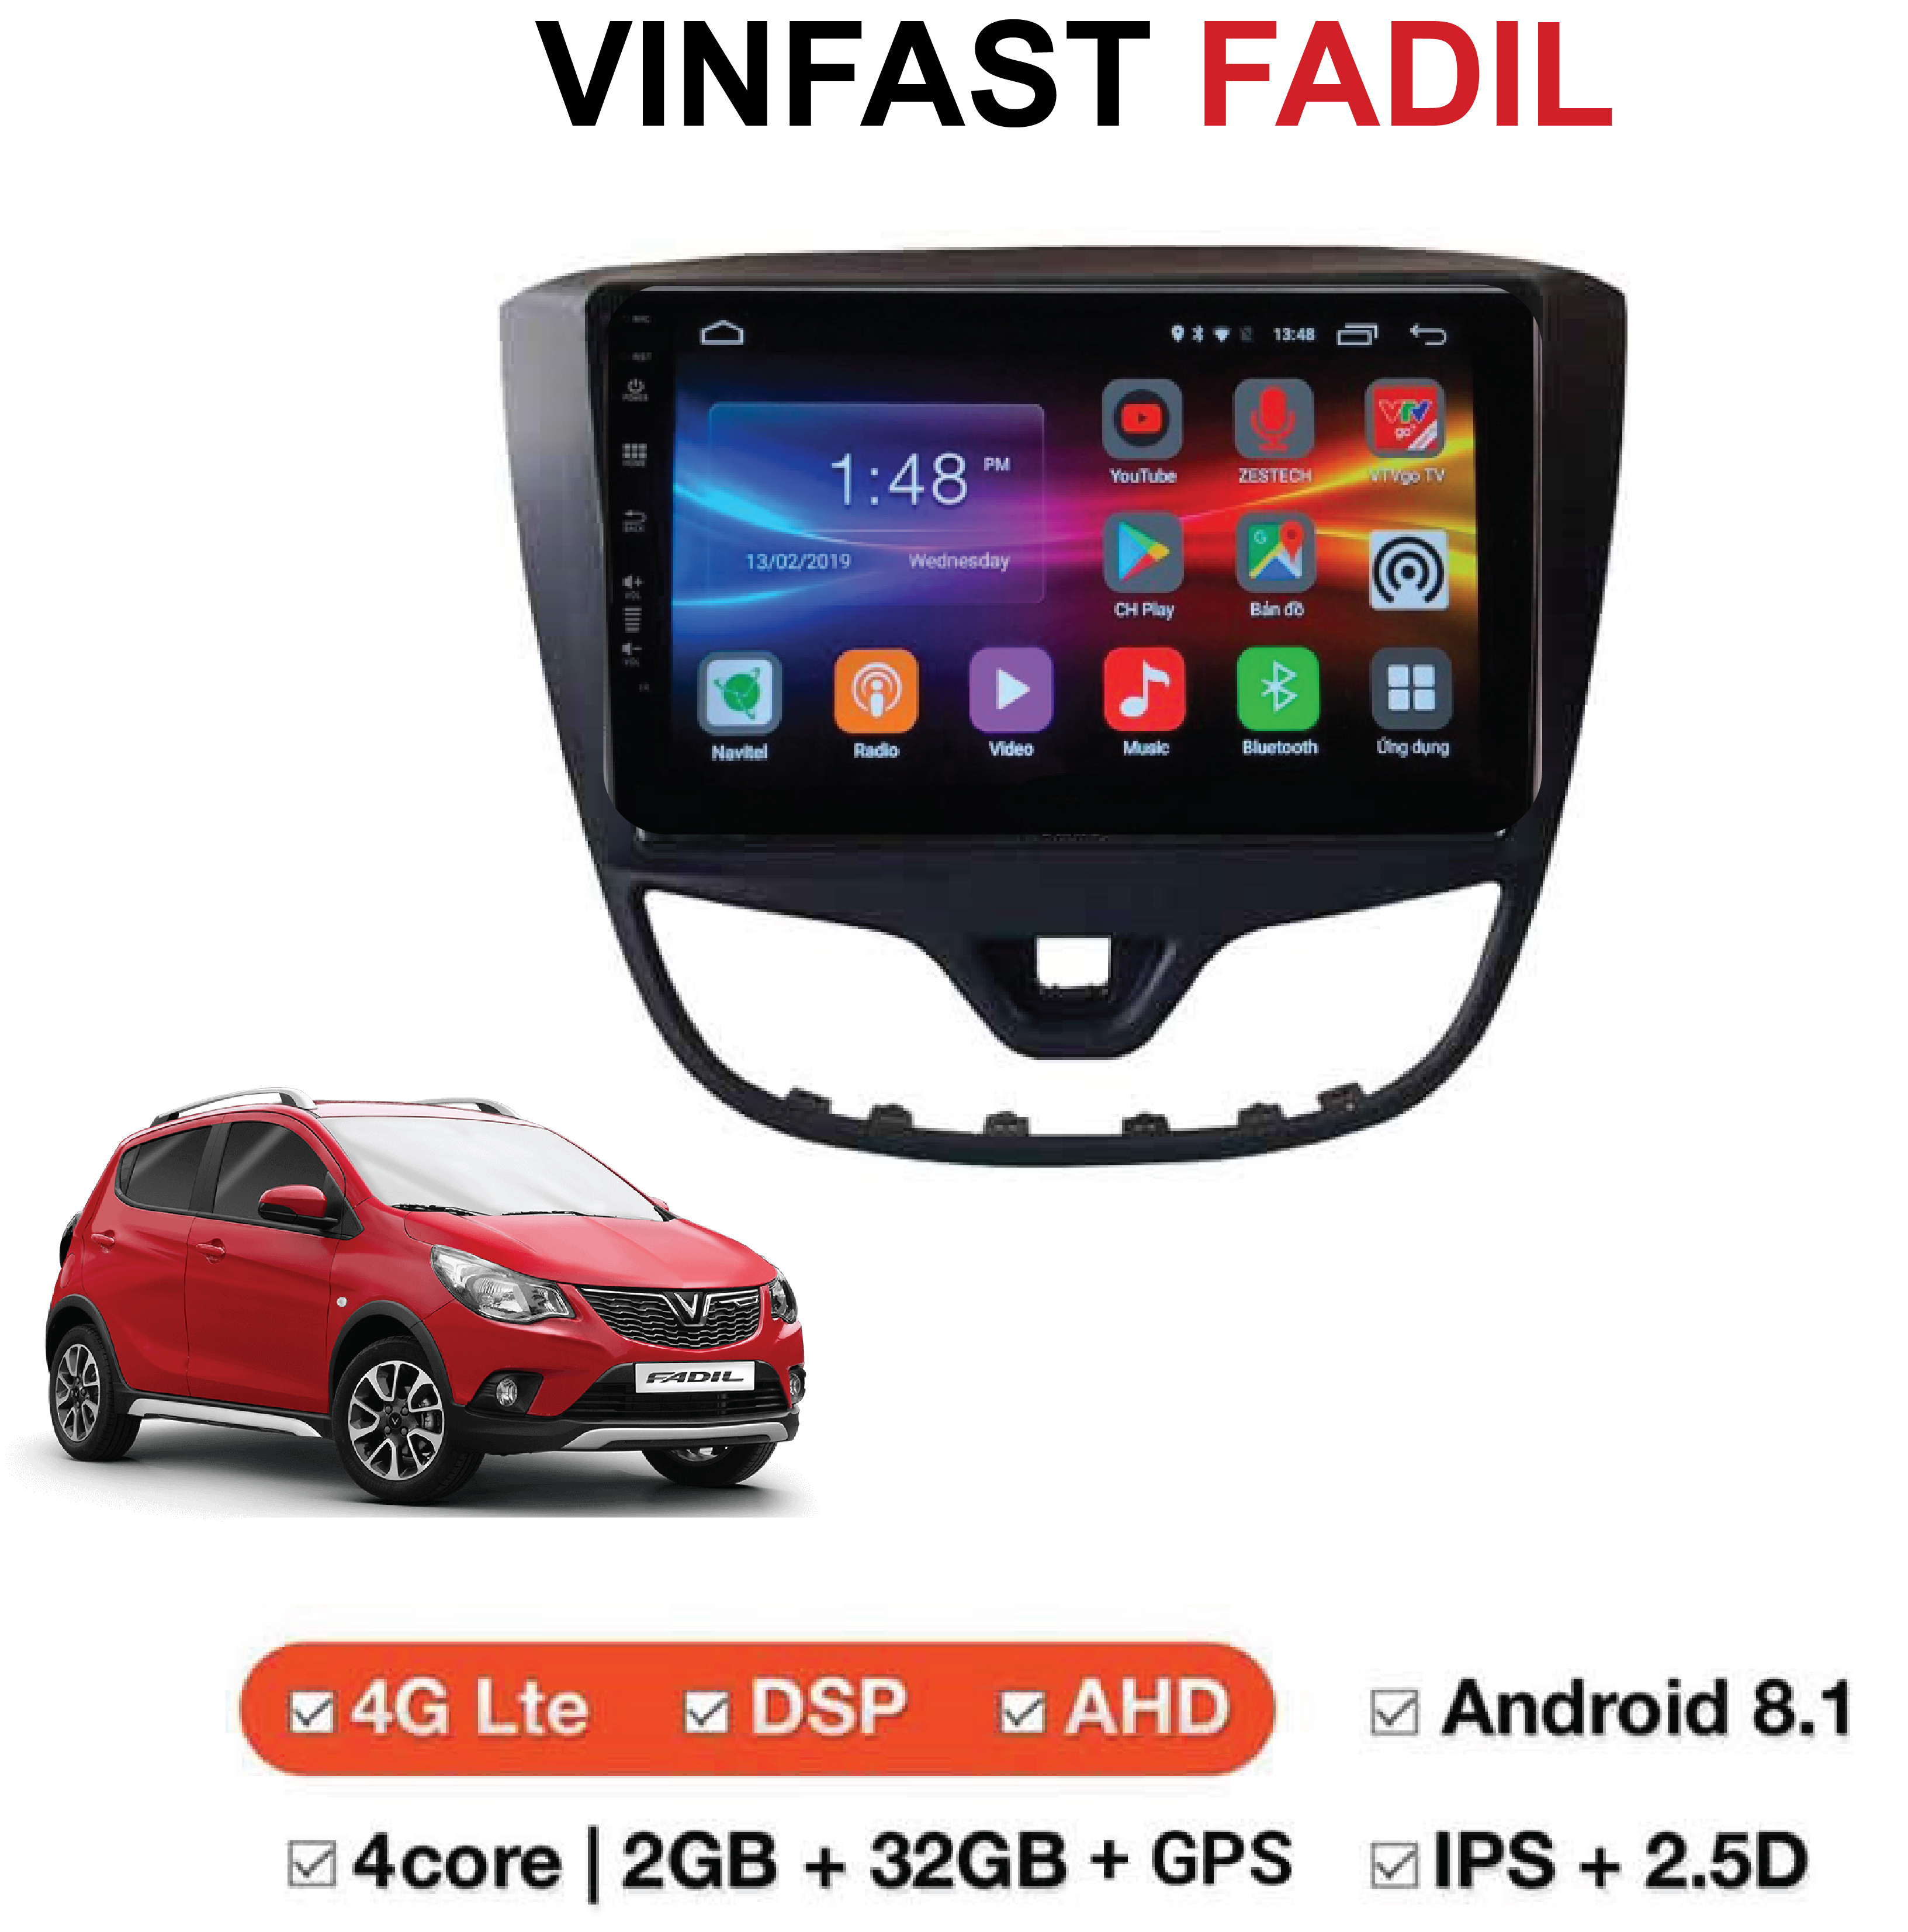 man-hinh-android-cho-xe-vinfast-fadil-4